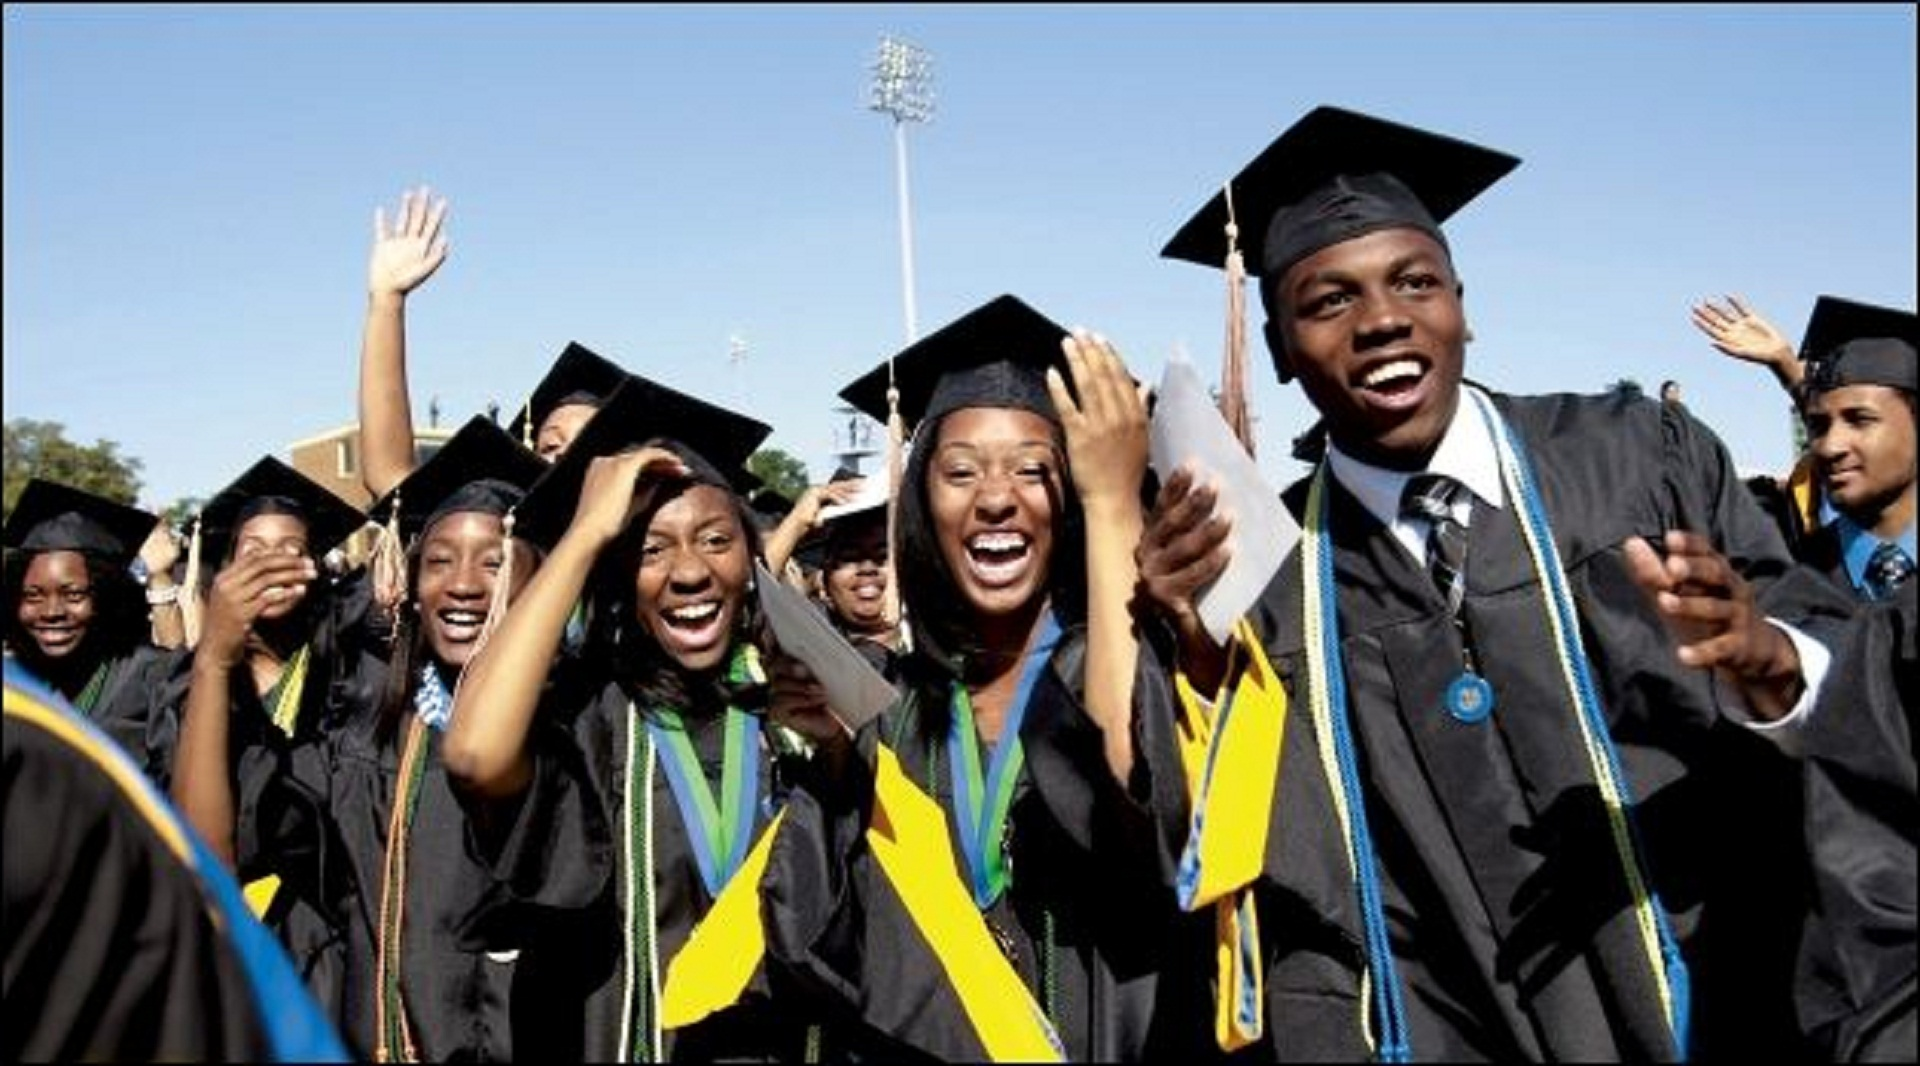 african-american-college-graduates-from-hbcu-hampton-university.jpg